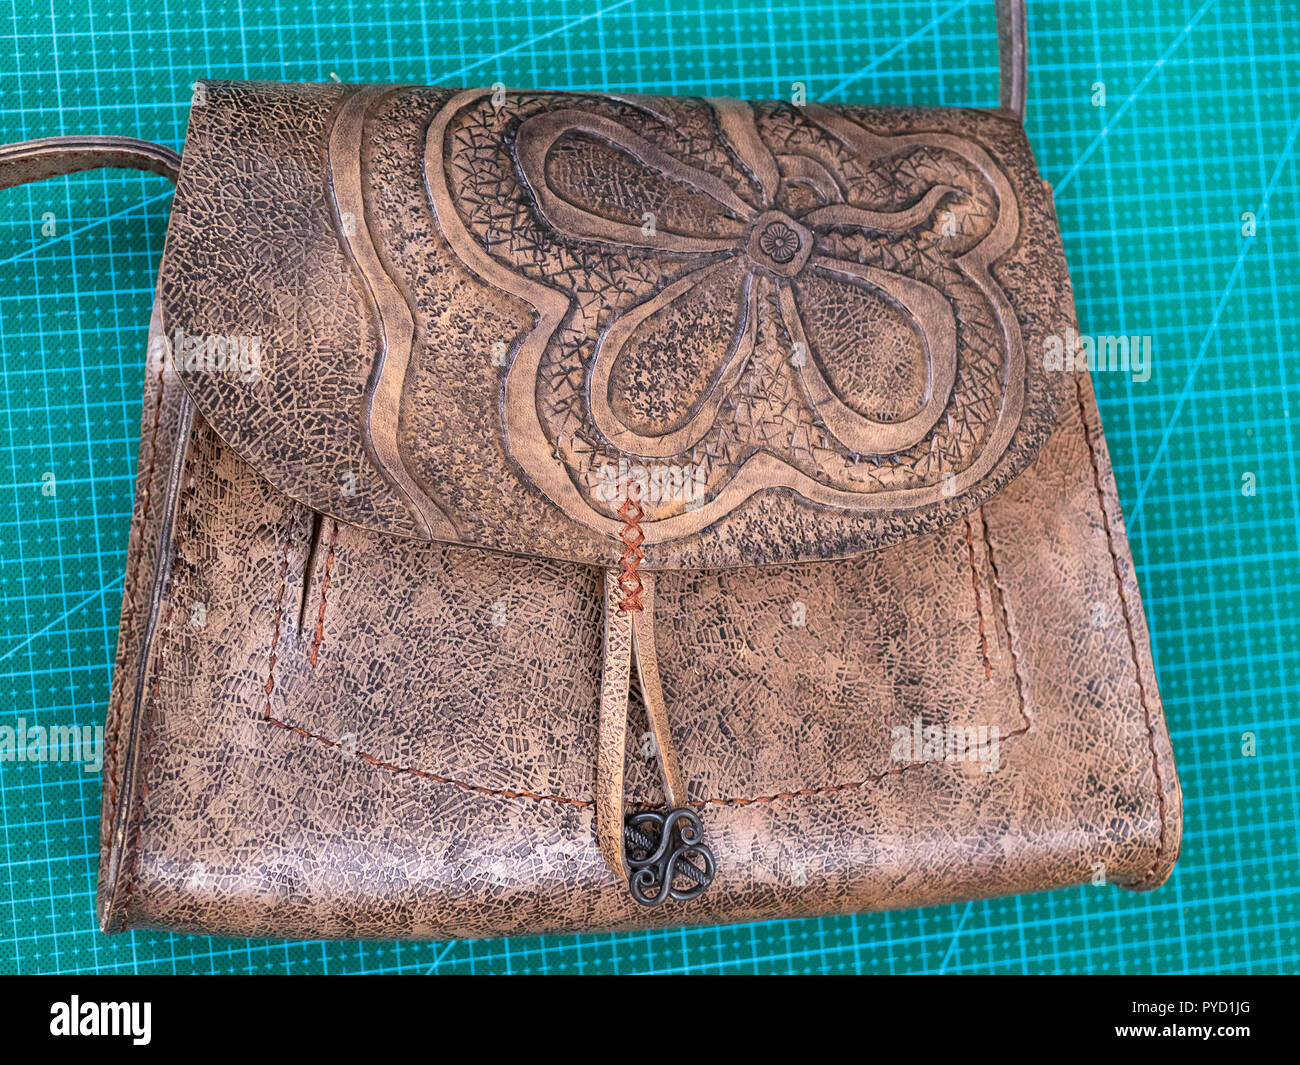 workshop of making the carved leather bag - view of the wet handbag polished by wax - Stock Image